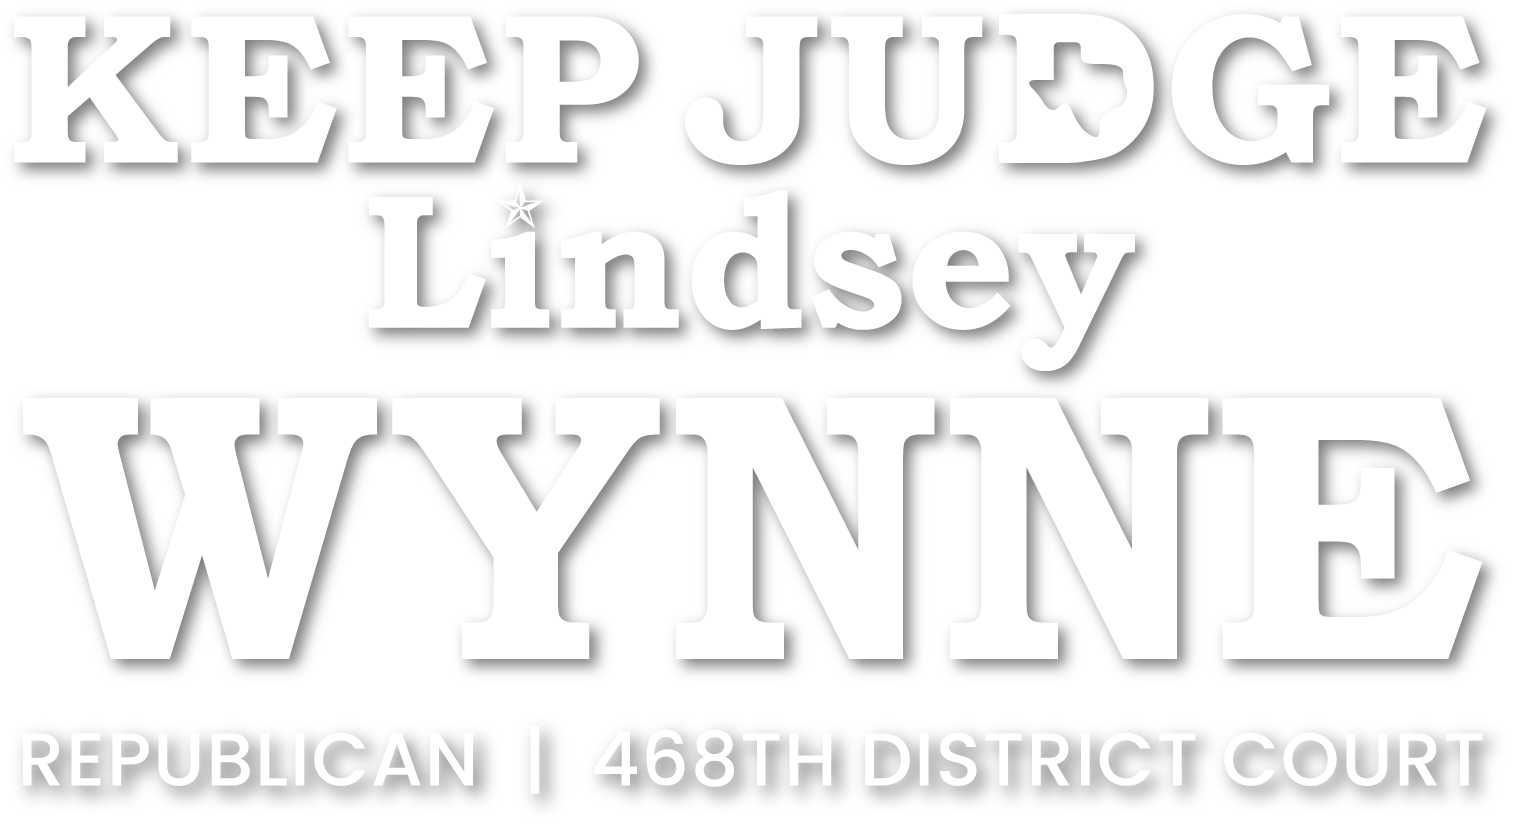 Keep Judge Lindsey Wynne Logo